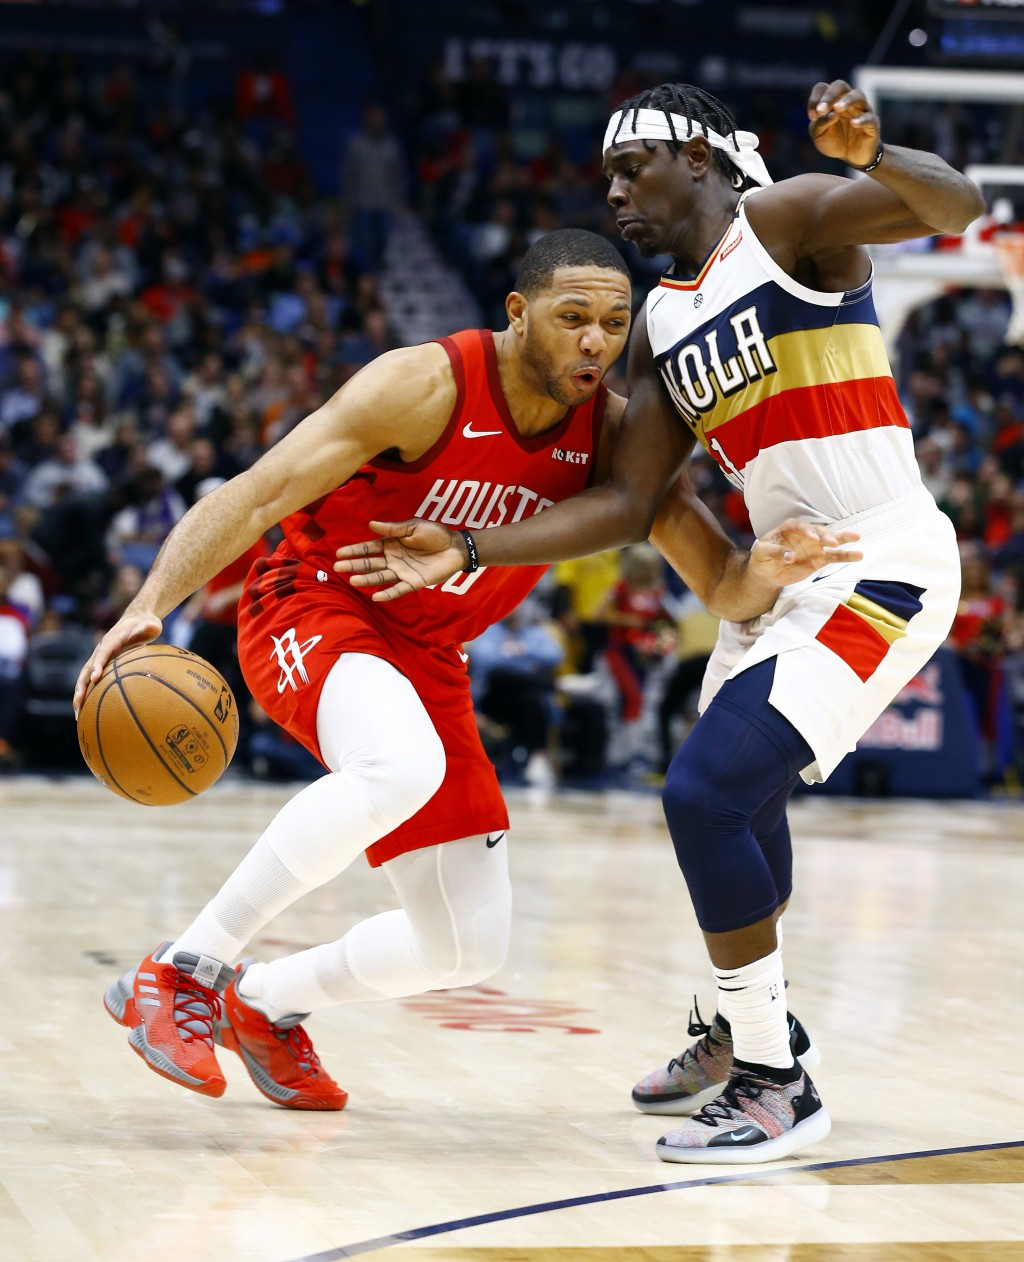 Houston Rockets guard Eric Gordon (10) drives to the basket around New Orleans Pelicans guard Jrue Holiday (11) during the first half of an NBA basket...